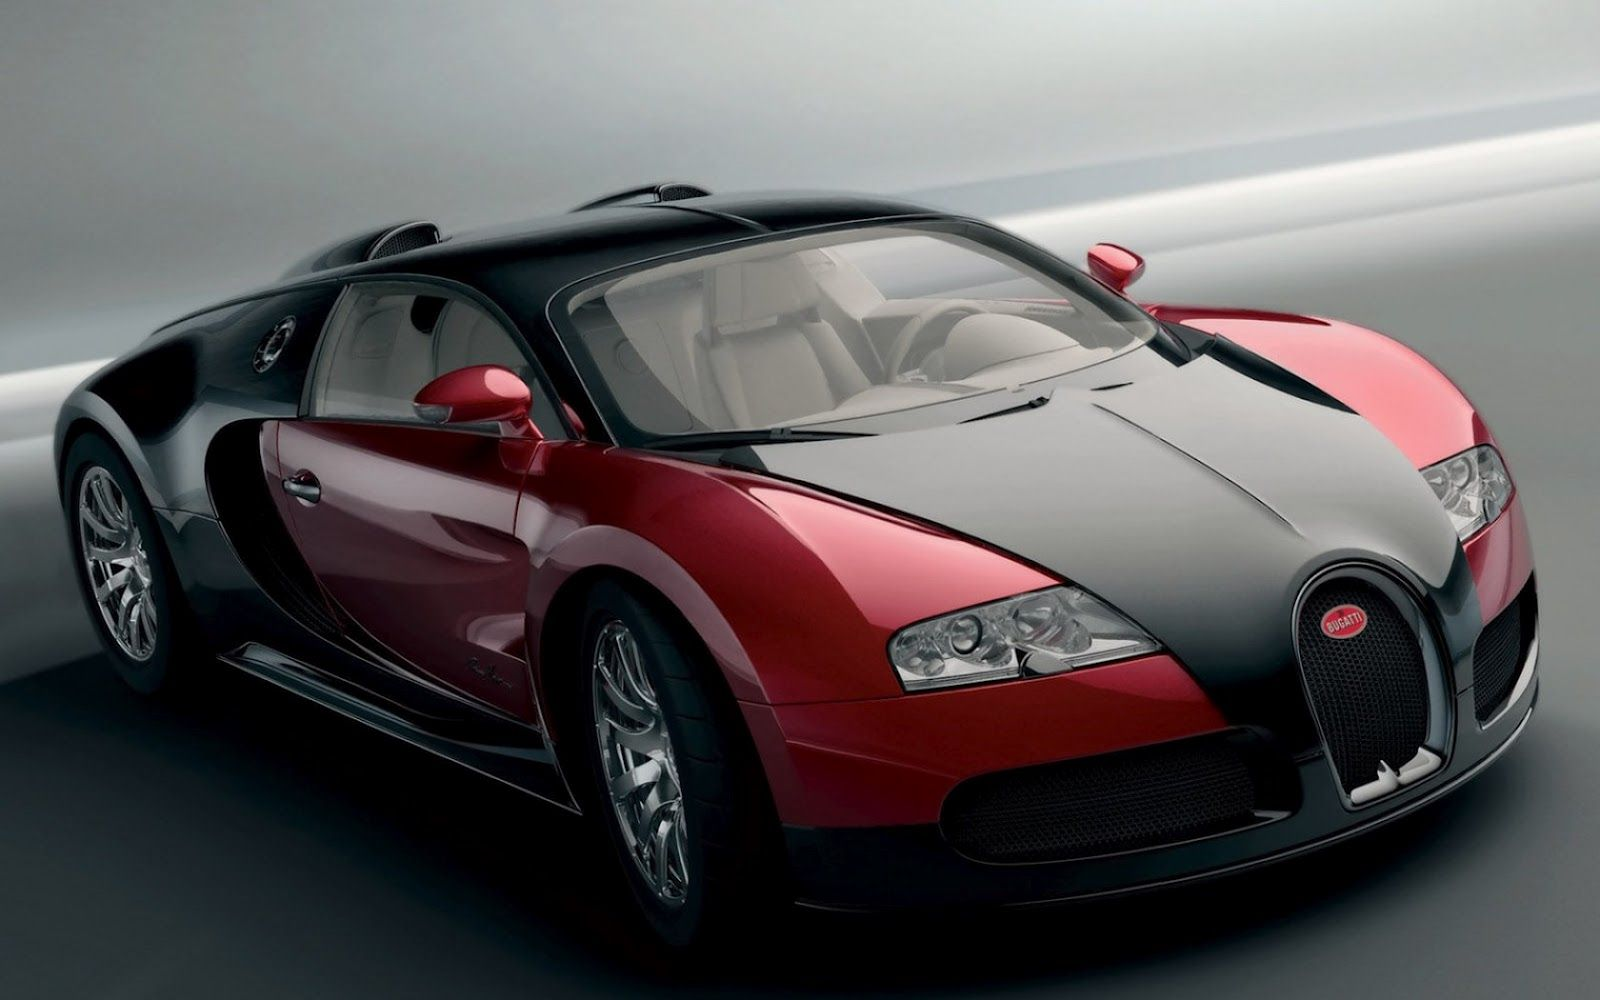 30 Best Bugatti Veyron Images On Pinterest | Bugatti Veyron, Cars And Dream  Cars